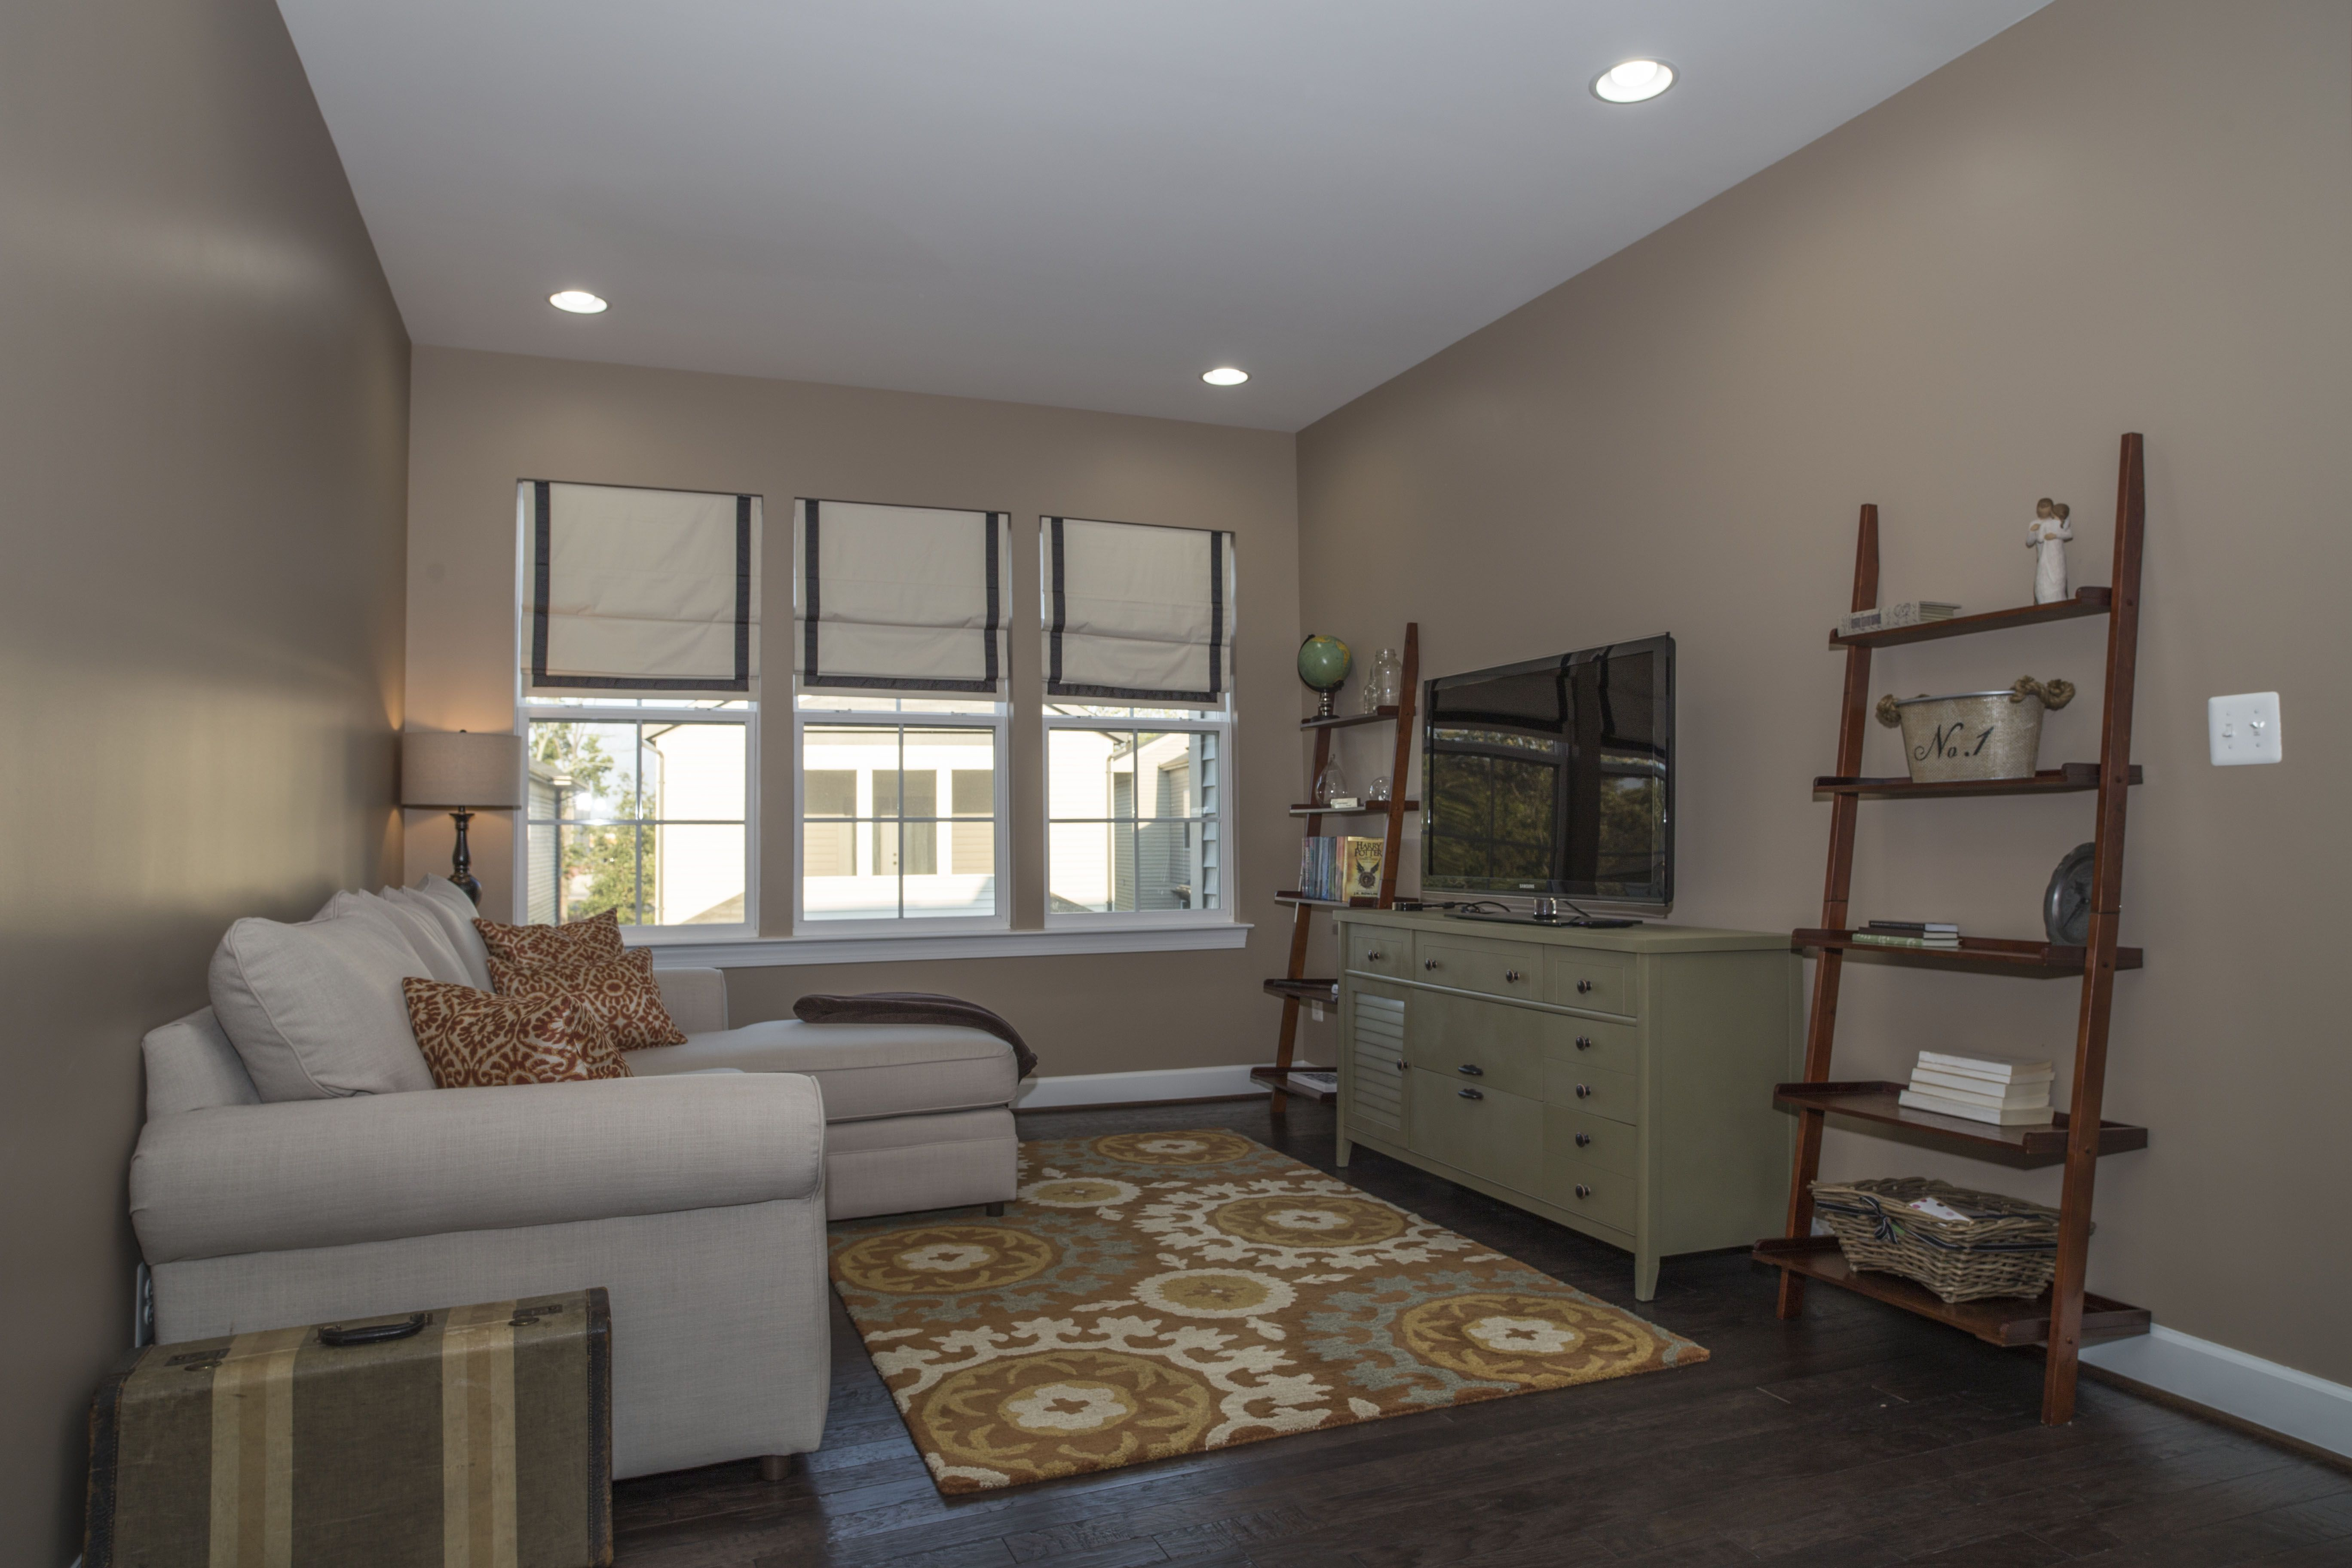 Loft - Located in the upper level, great space for multiple purposes